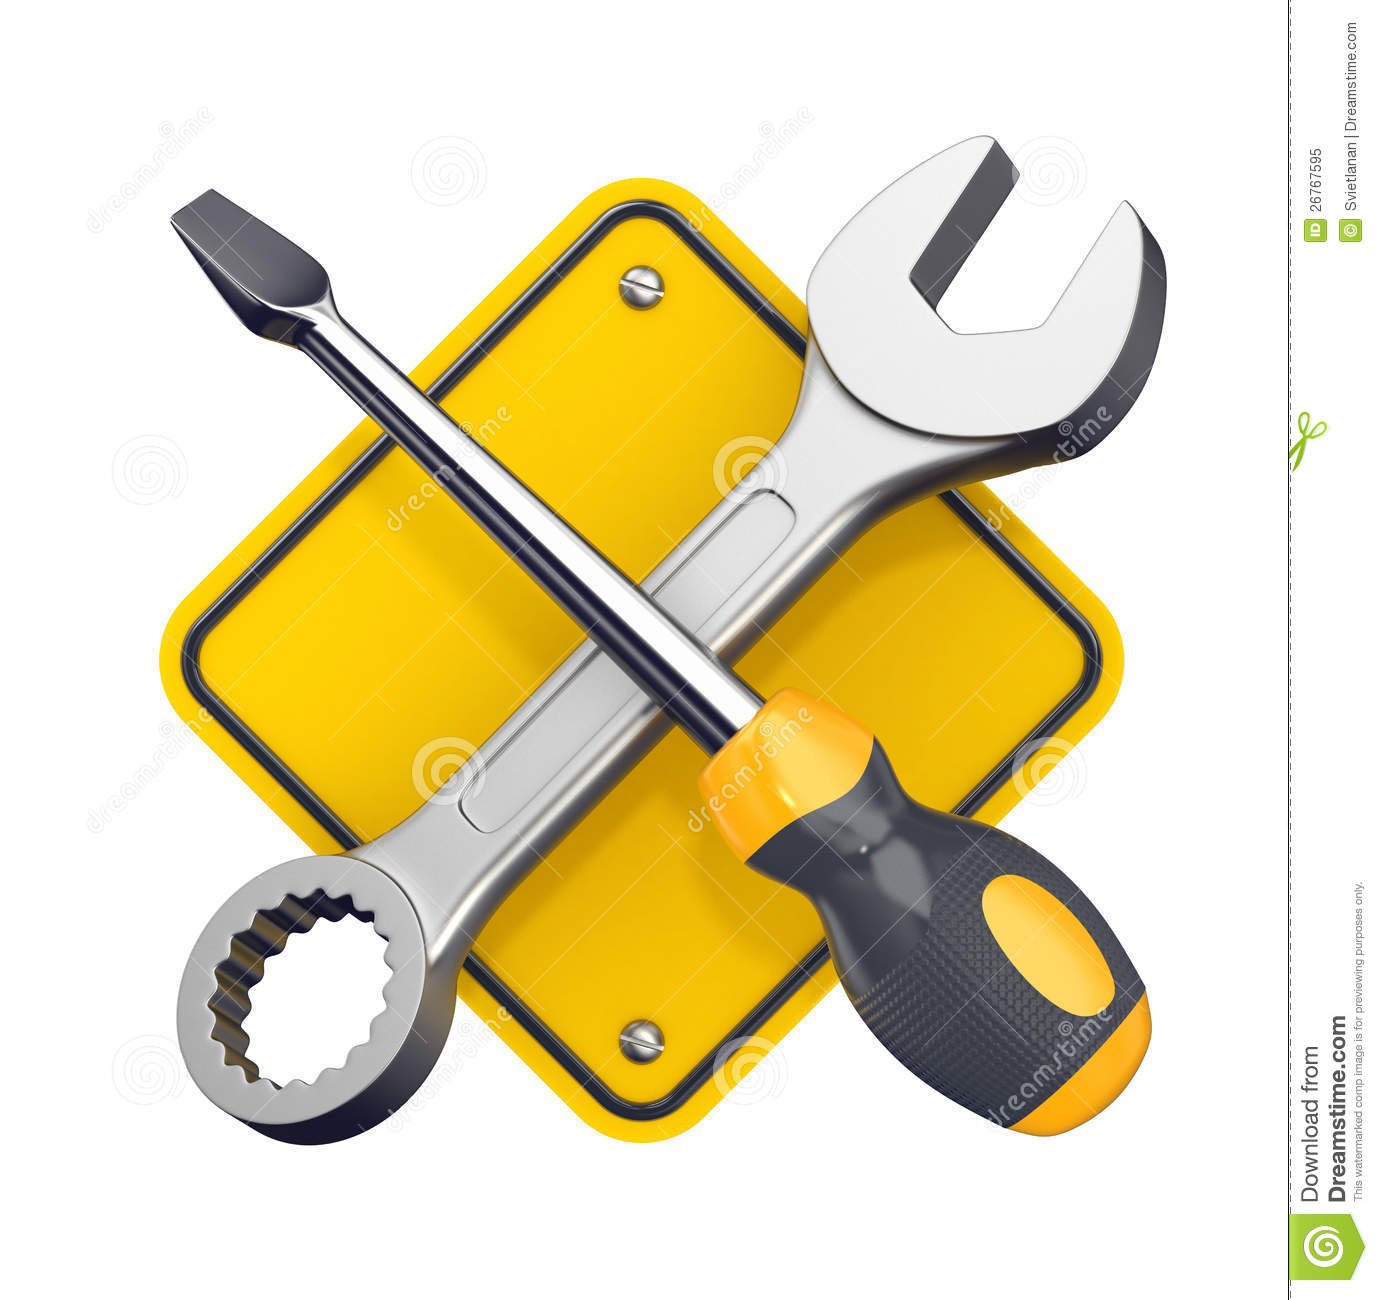 Tools Sign. Royalty Free Stock Photo - Image: 26767595 Under Construction Signs